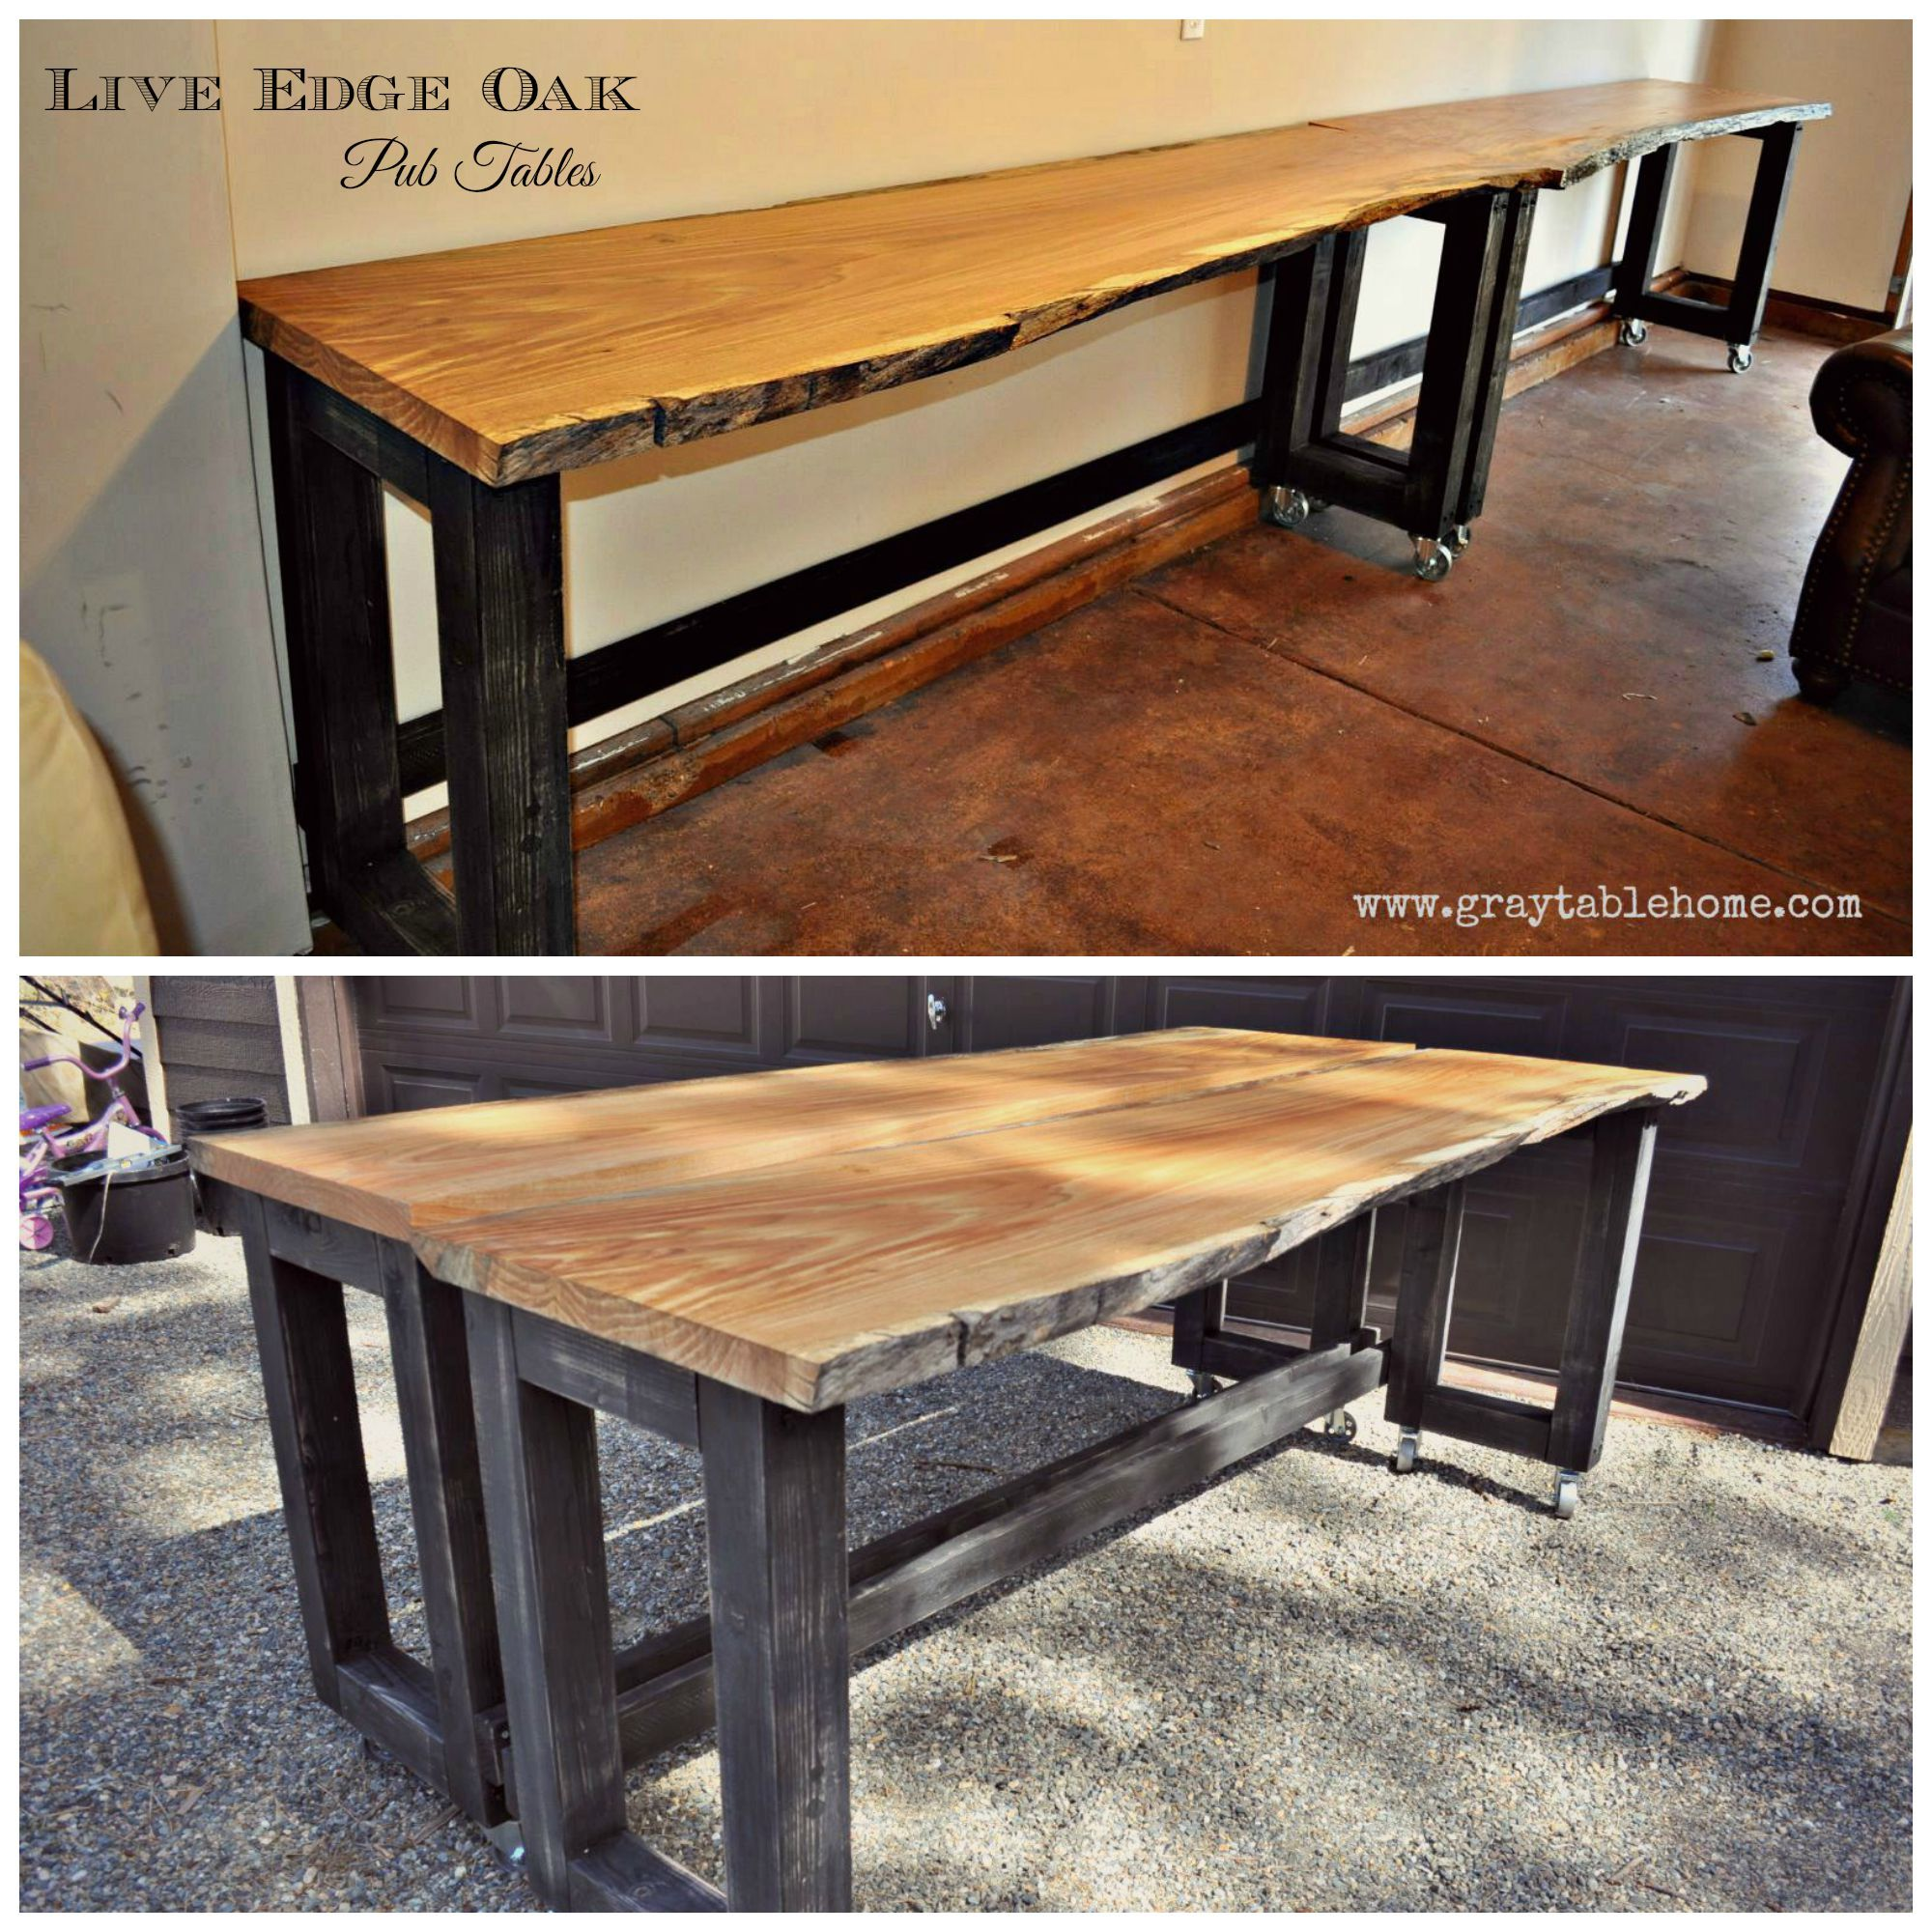 Diy convertible bar pub table do it yourself home projects from diy convertible bar pub table diy projects solutioingenieria Choice Image